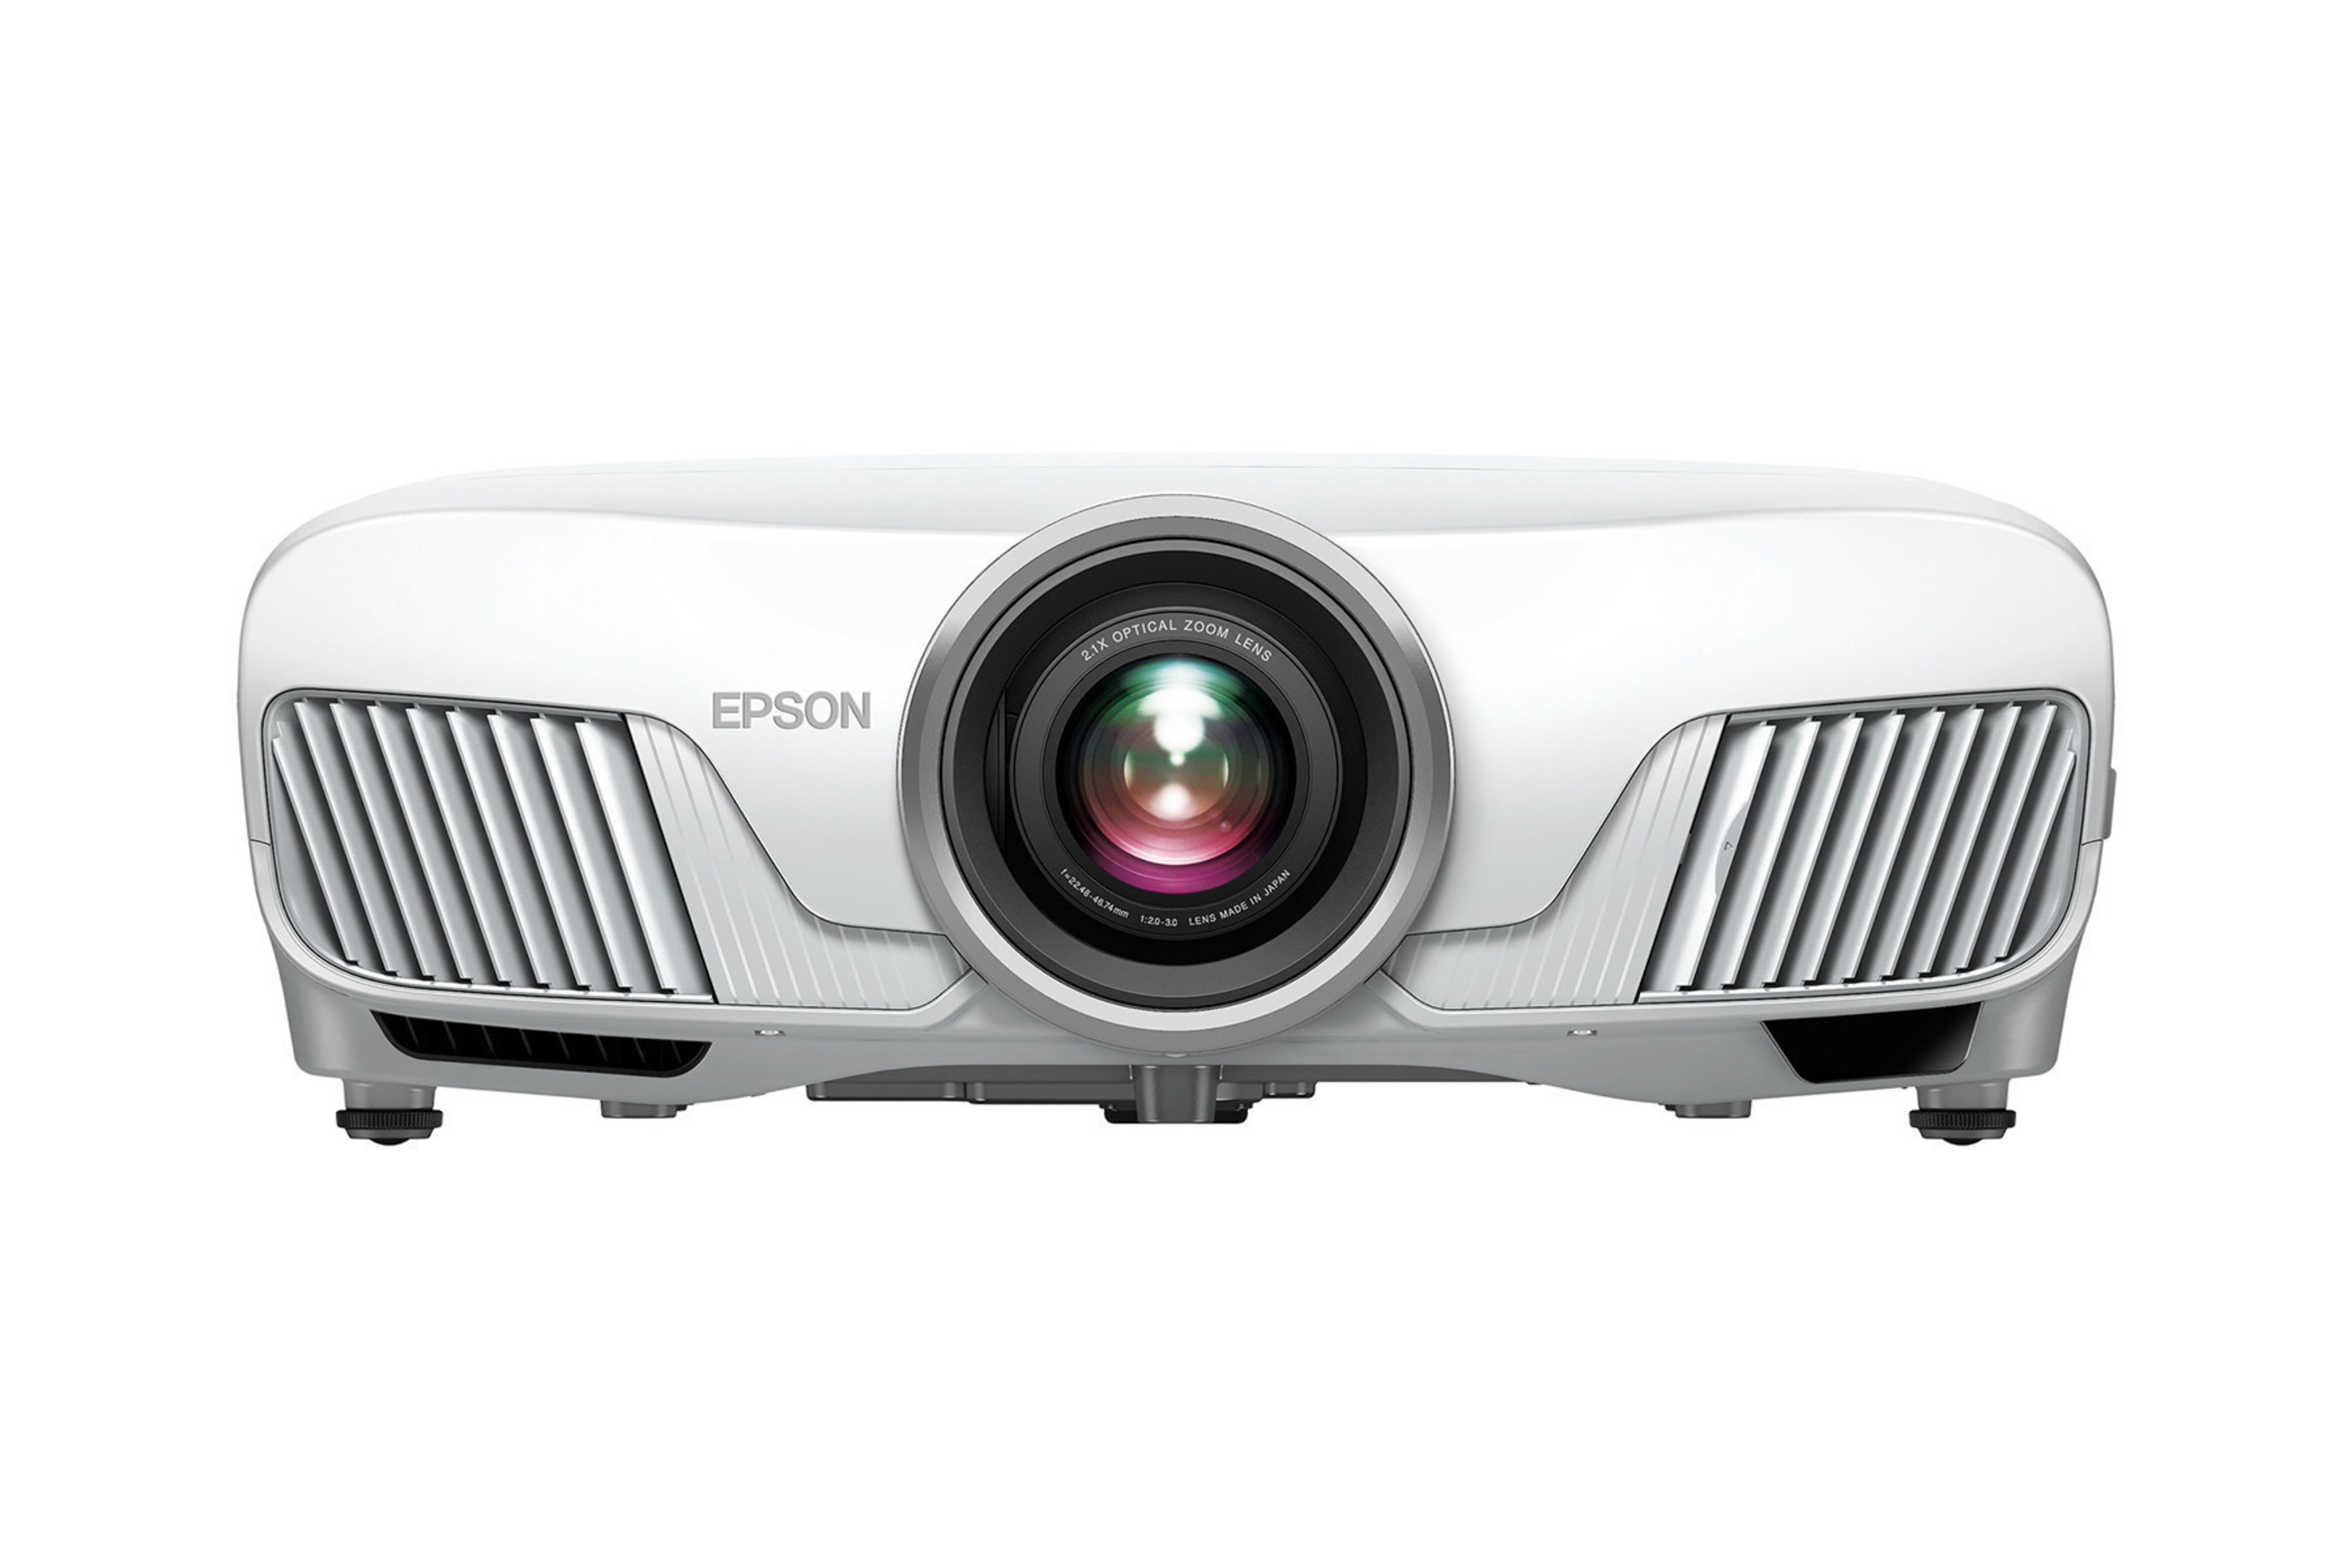 Epson Introduces World's First 3LCD Projectors with 4K UHD Signal Input and HDR for Under $3,000